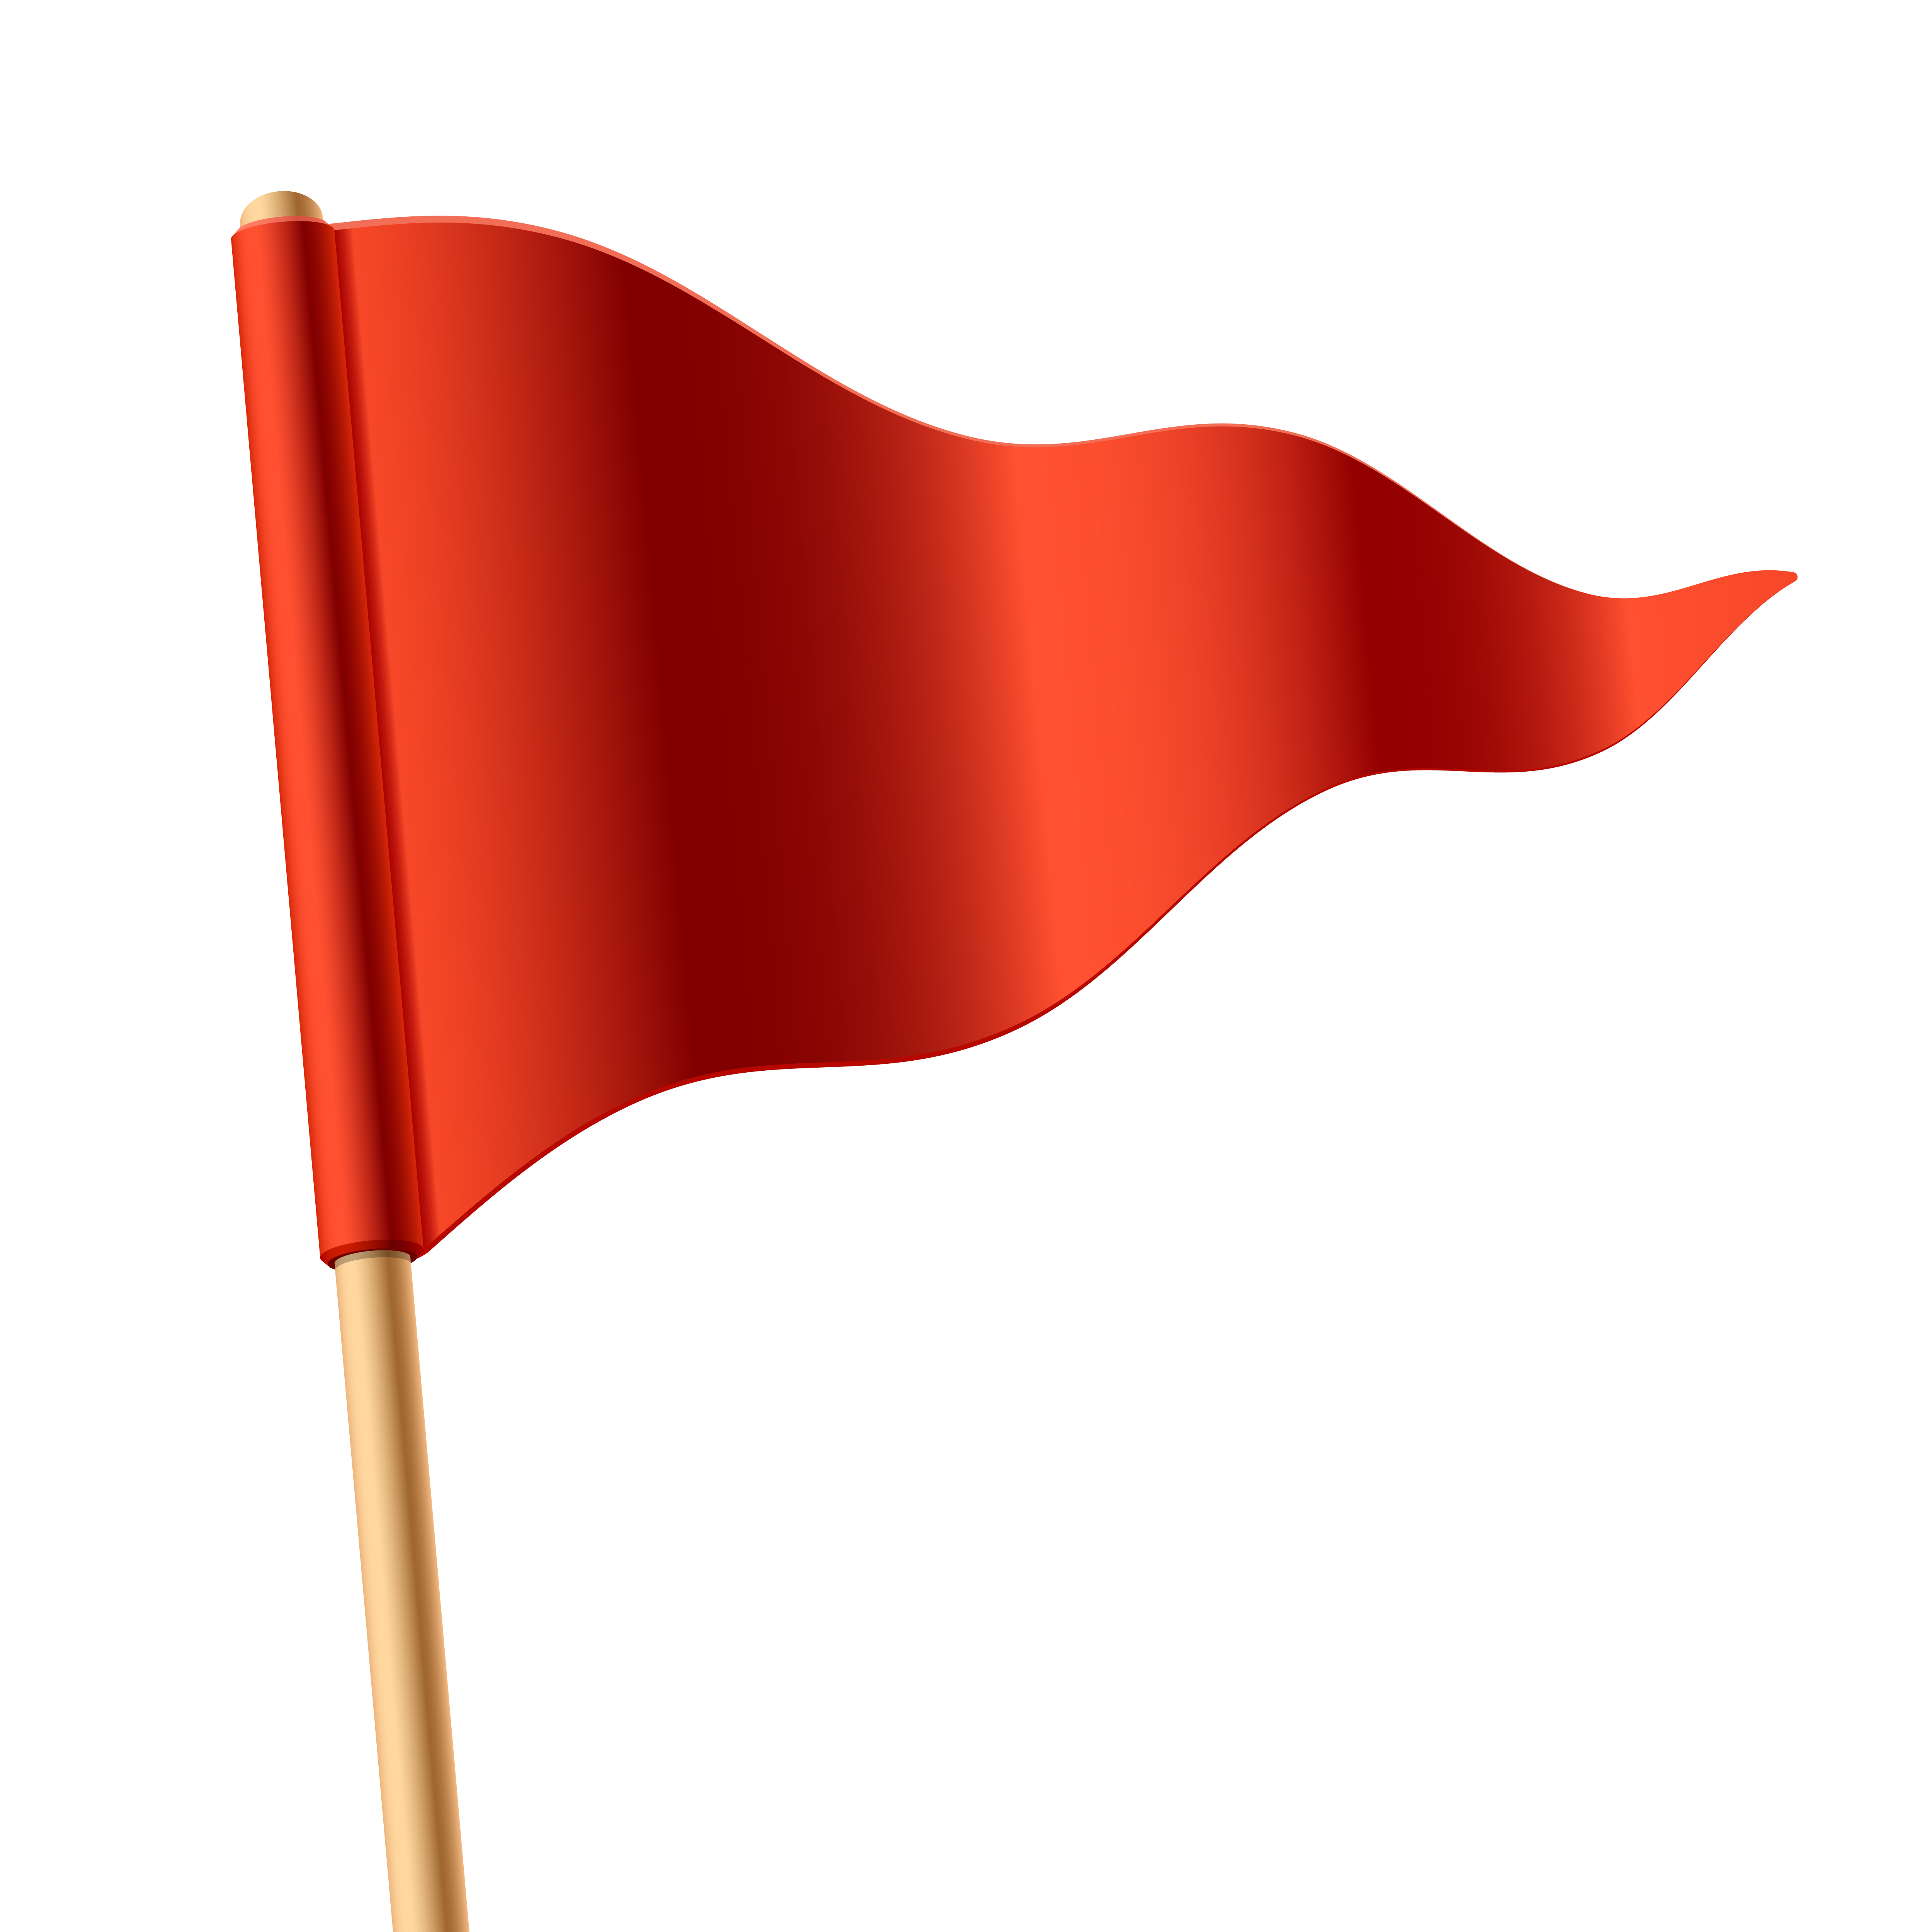 Red flag clipart jpg free library Free Red-Flag Cliparts, Download Free Clip Art, Free Clip ... jpg free library